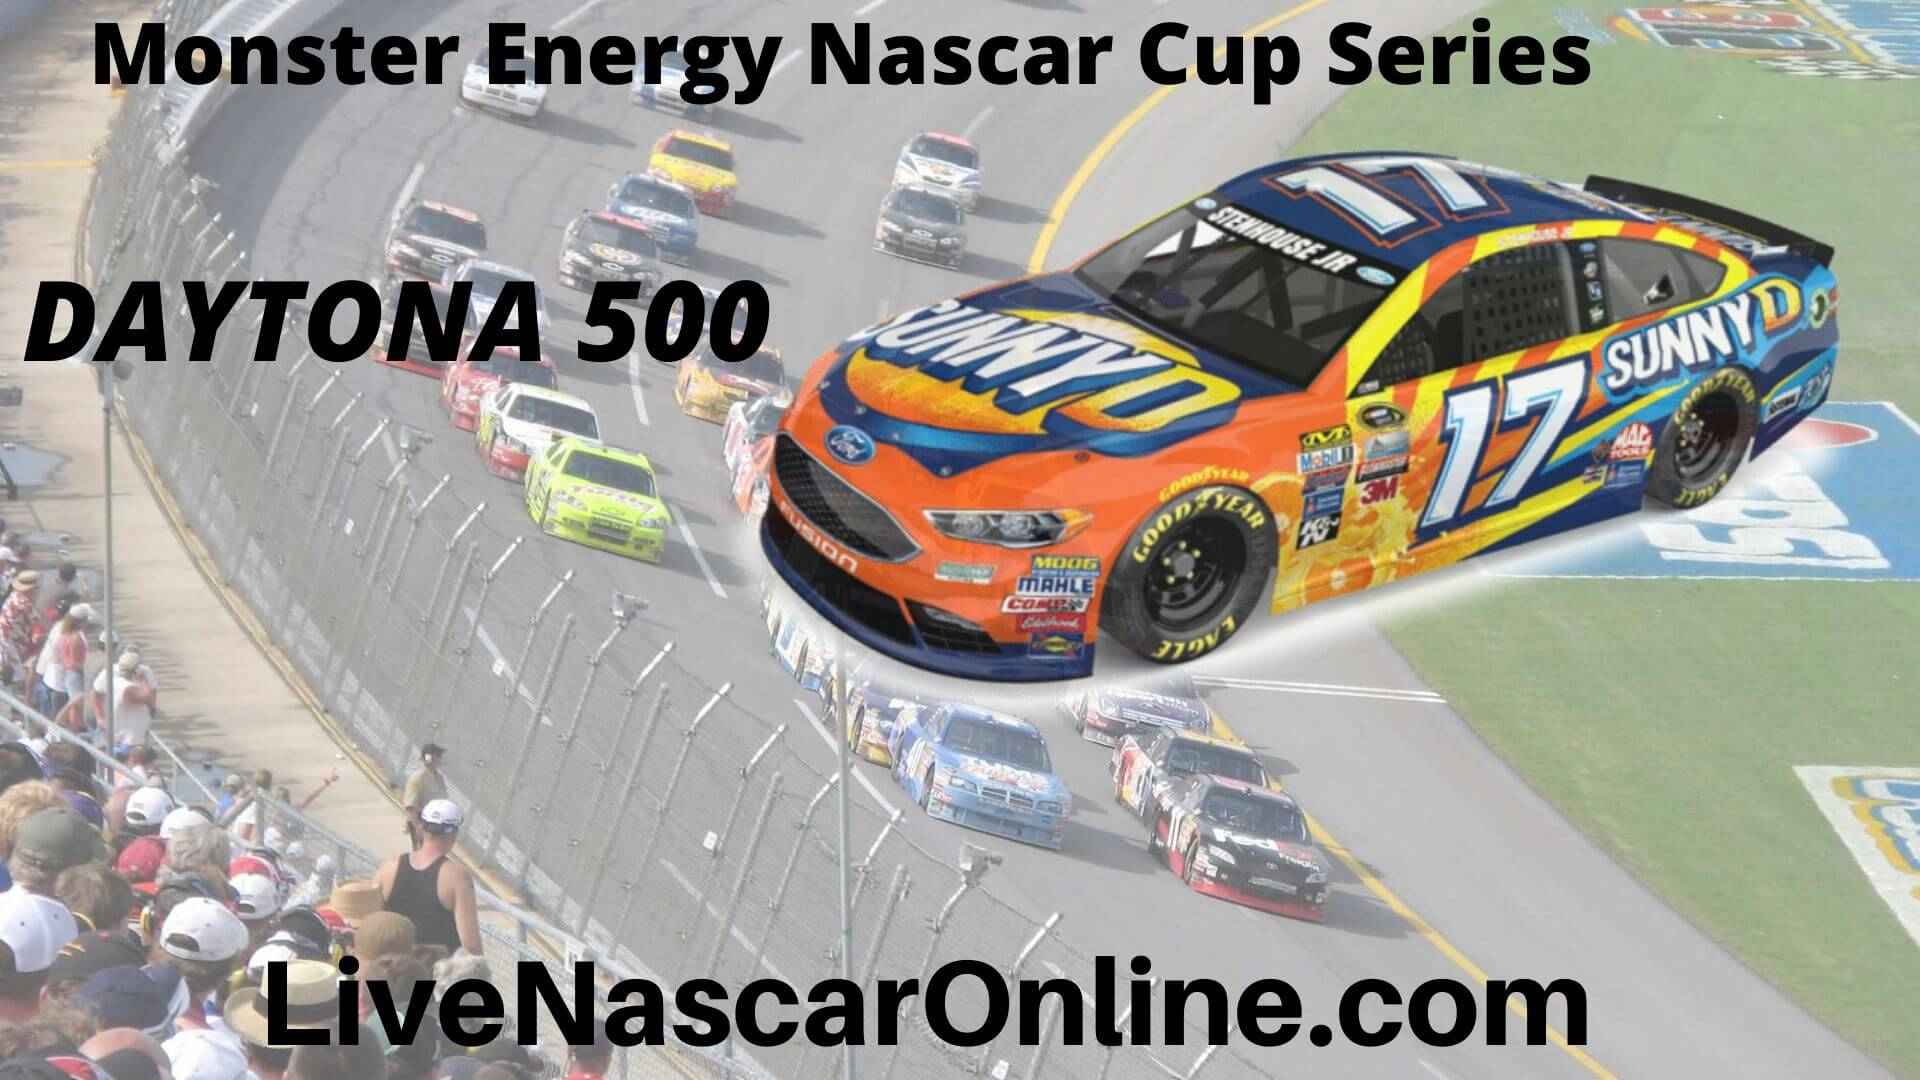 2017 Daytona 500 Race Live Streaming